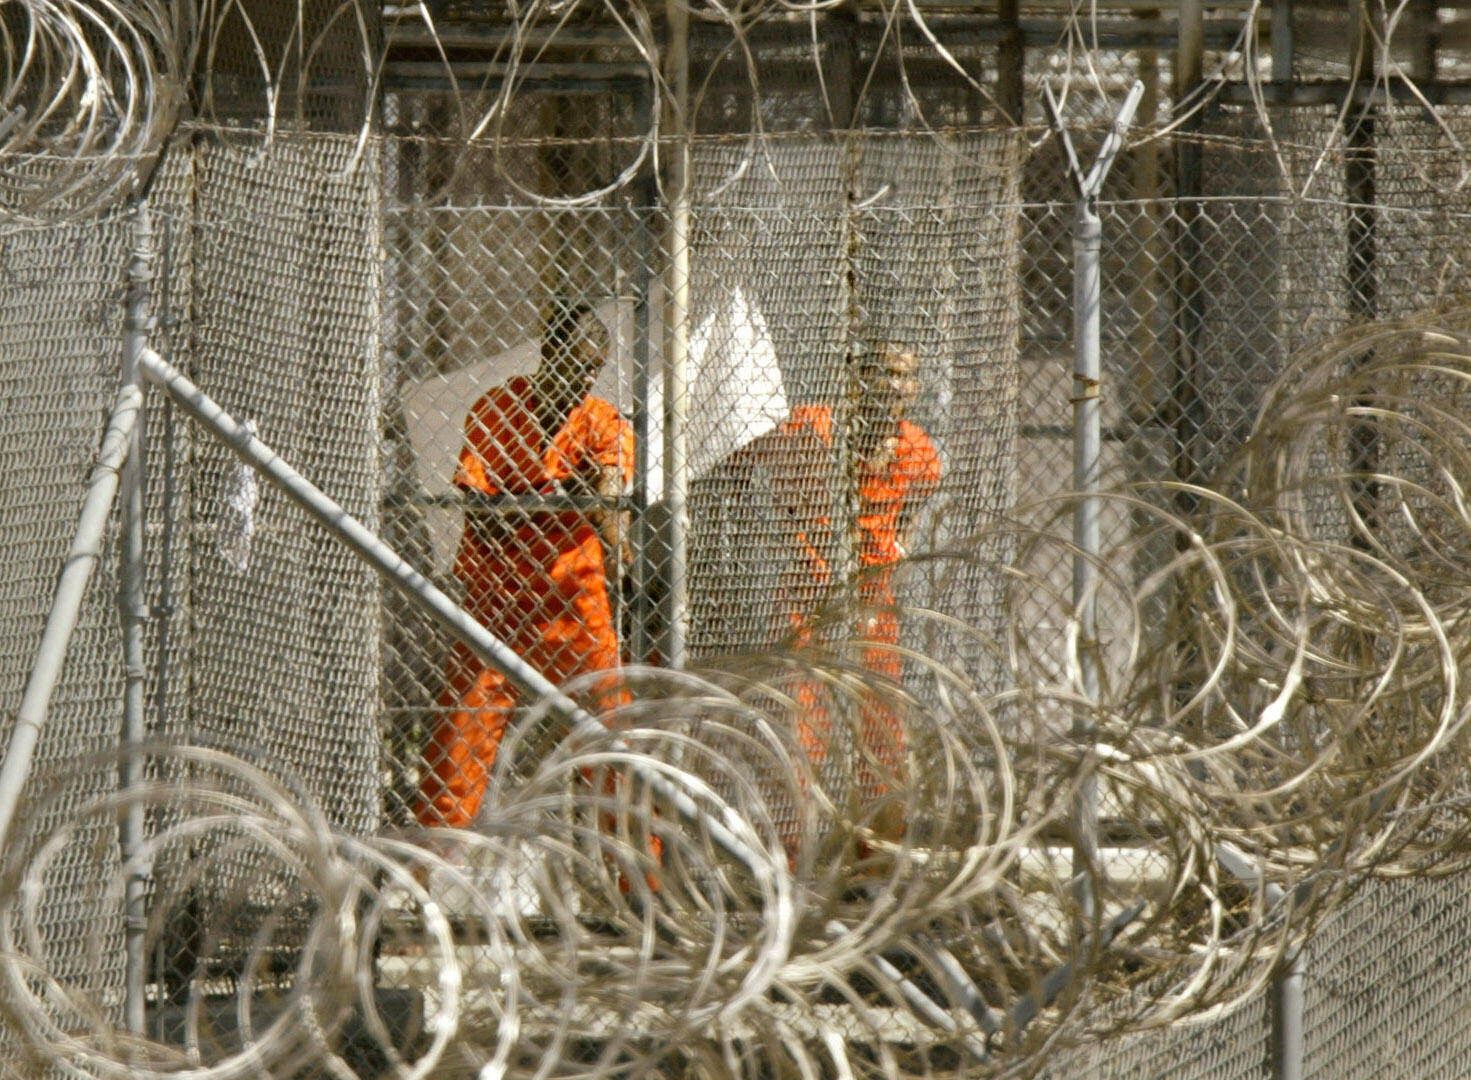 In this file photo taken on January 27, 2002, a detainee from Afghanistan cleans himself as another detainee looks out from his enclosure at the US naval base in Guantanamo Bay, Cuba